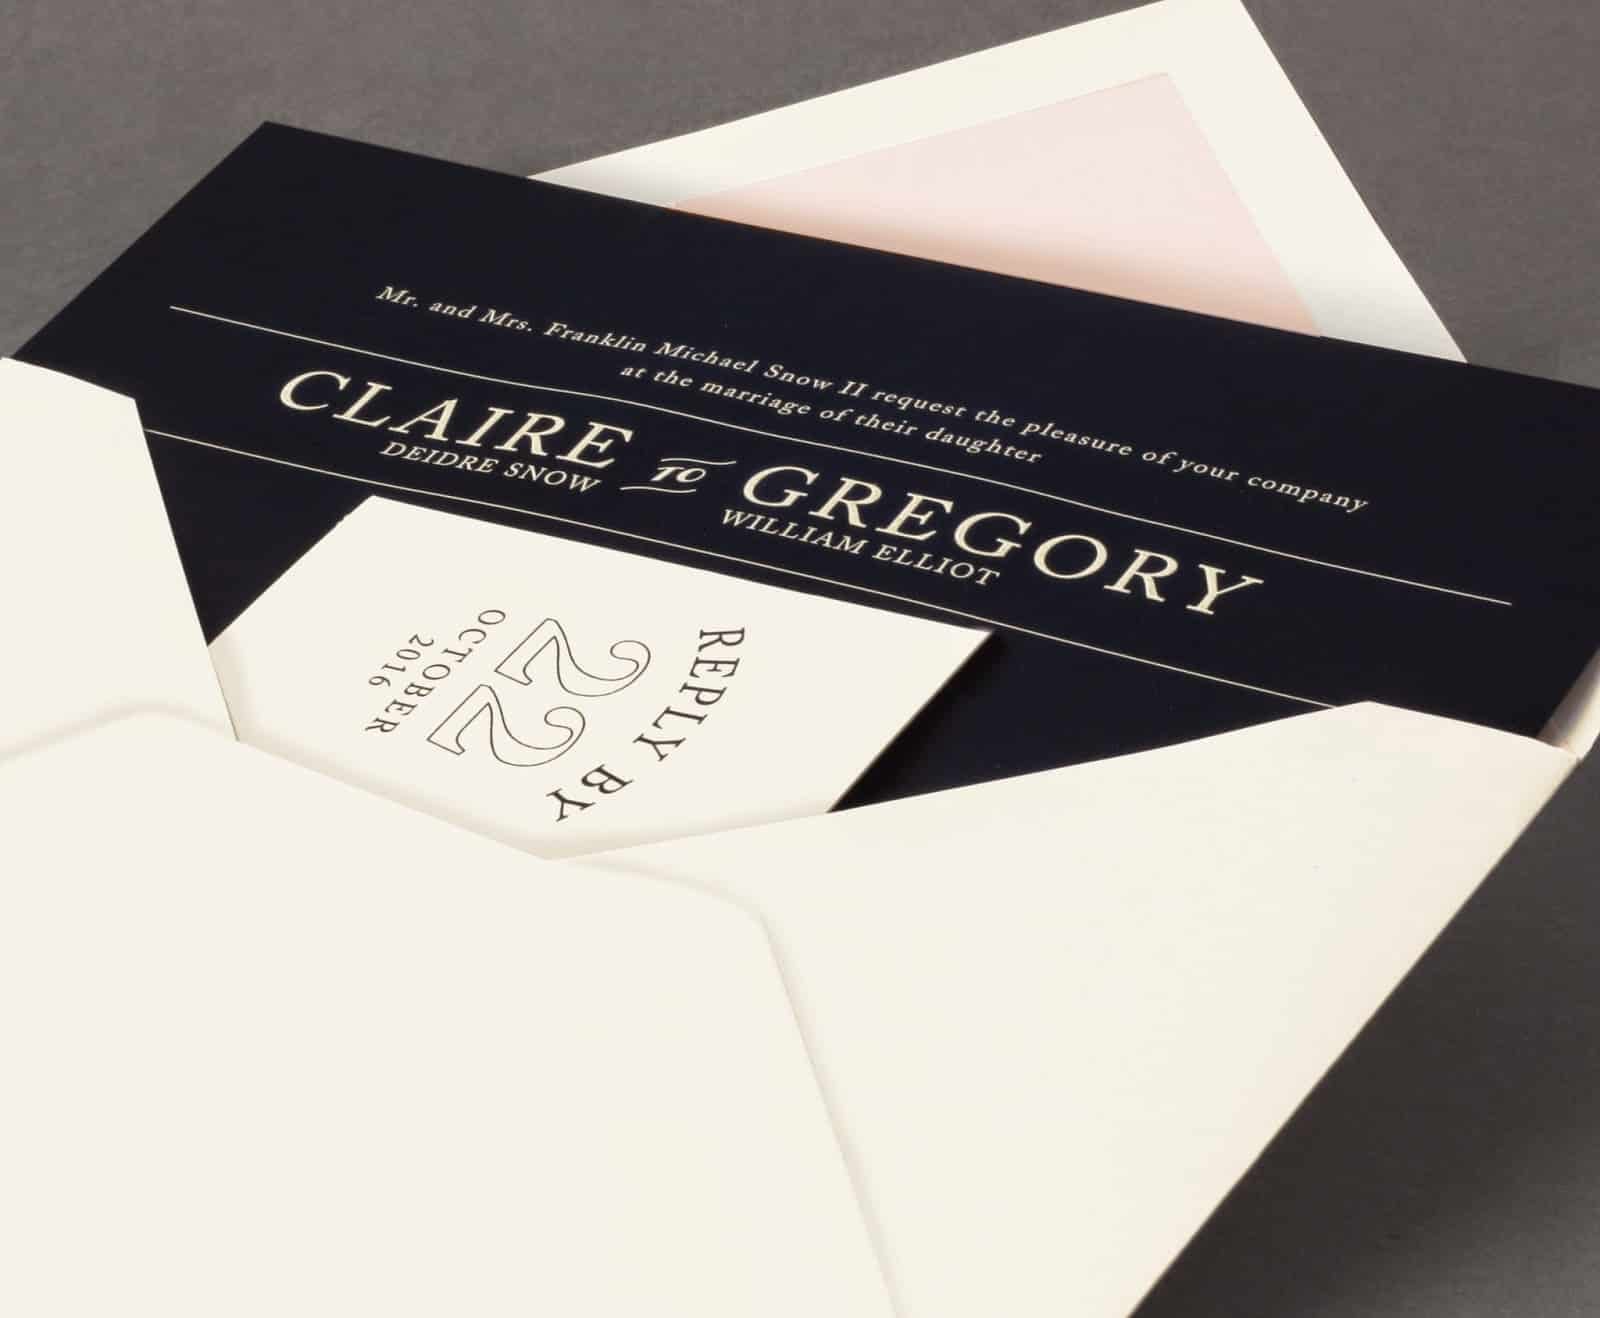 Vera Wang Black and White Letterpress Weddings volume two